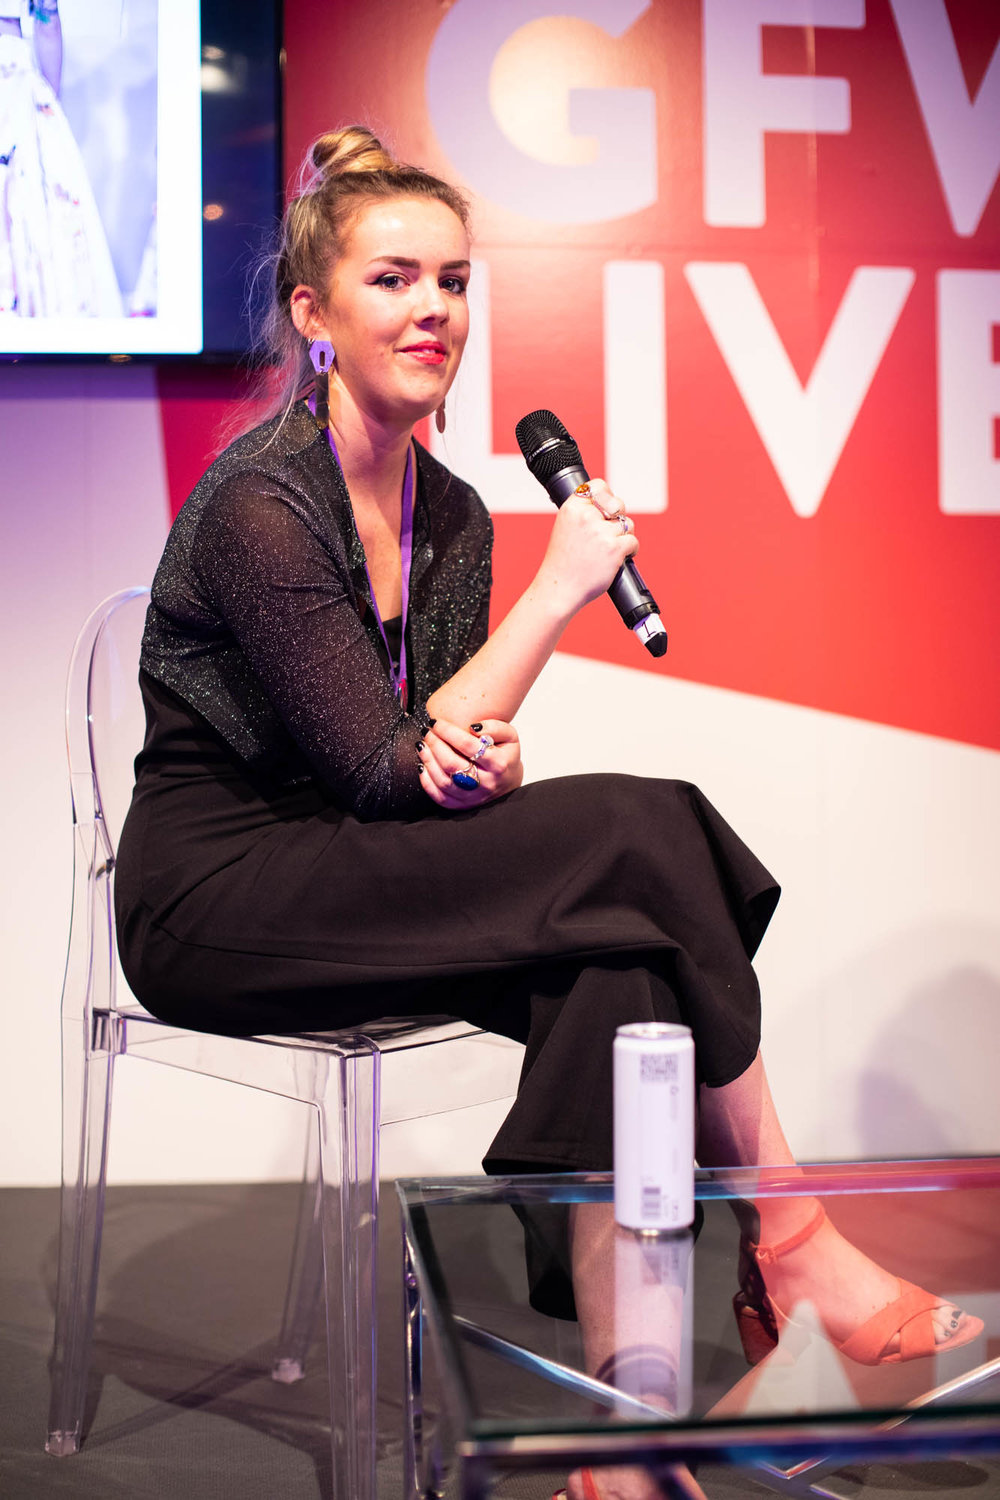 Claire Tagg Talk  050618 Imageby Lily-5.jpg